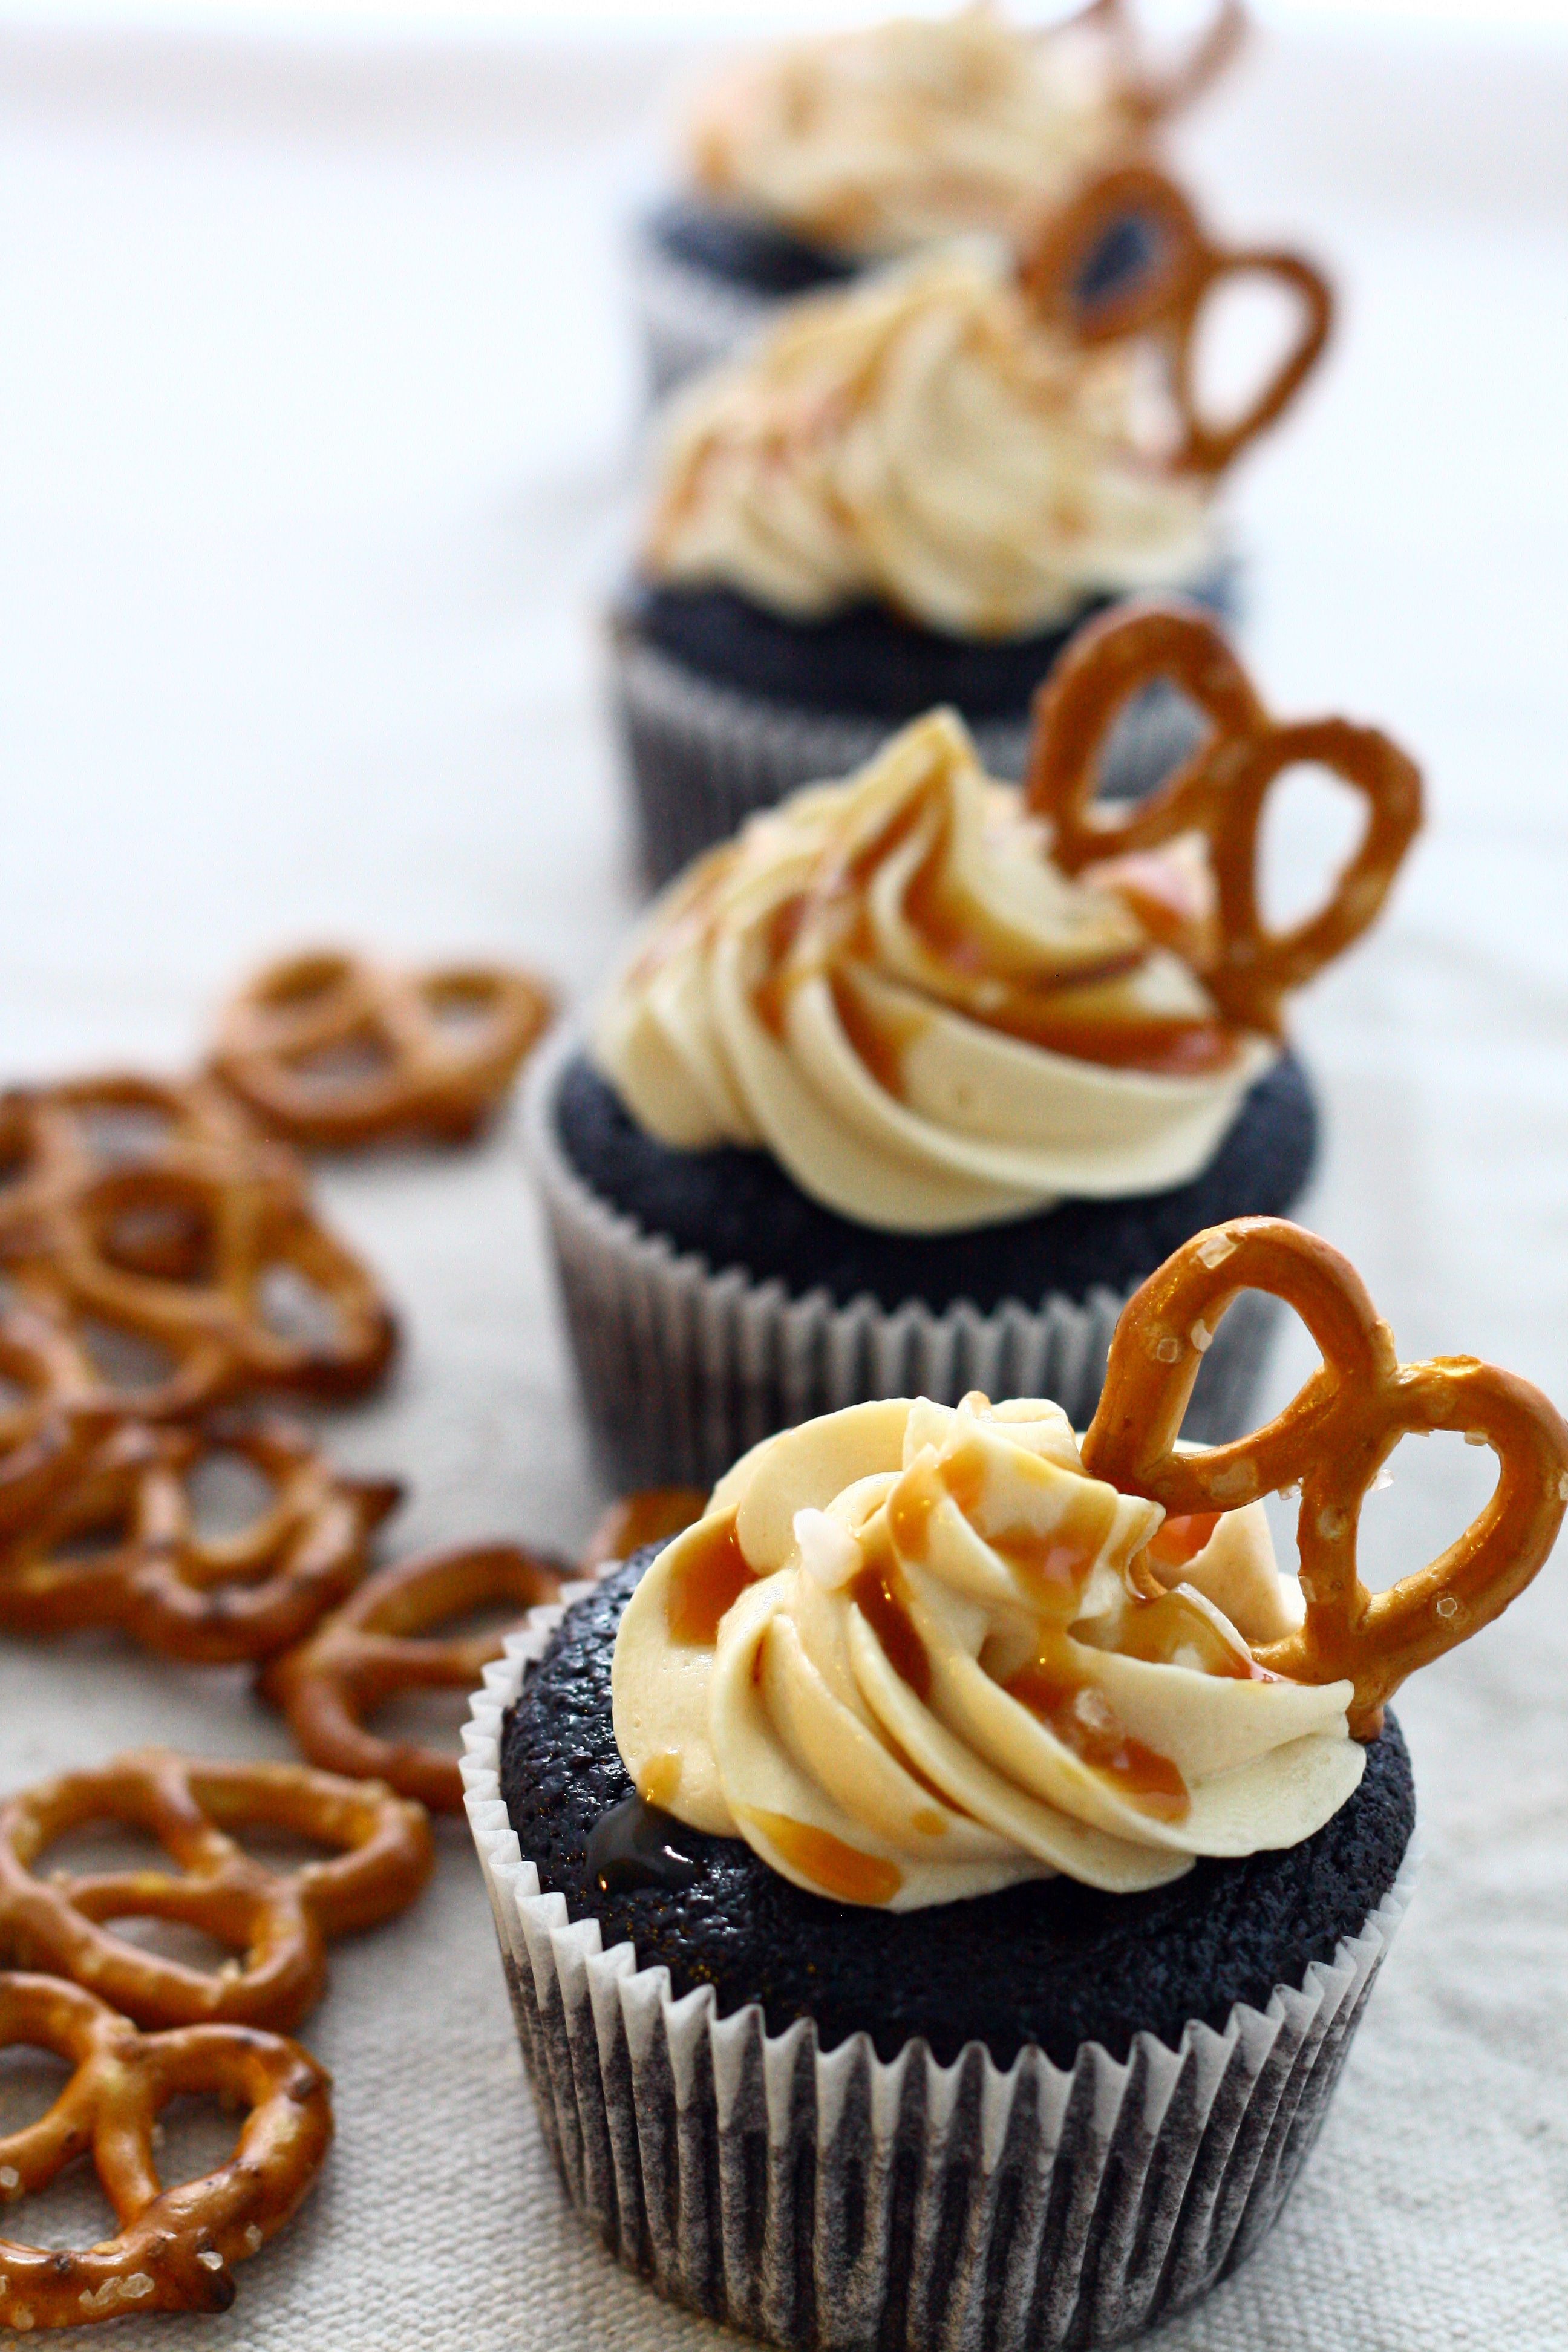 Chocolate Stout Cupcakes with Salted Caramel Frosting | doughseedough ...